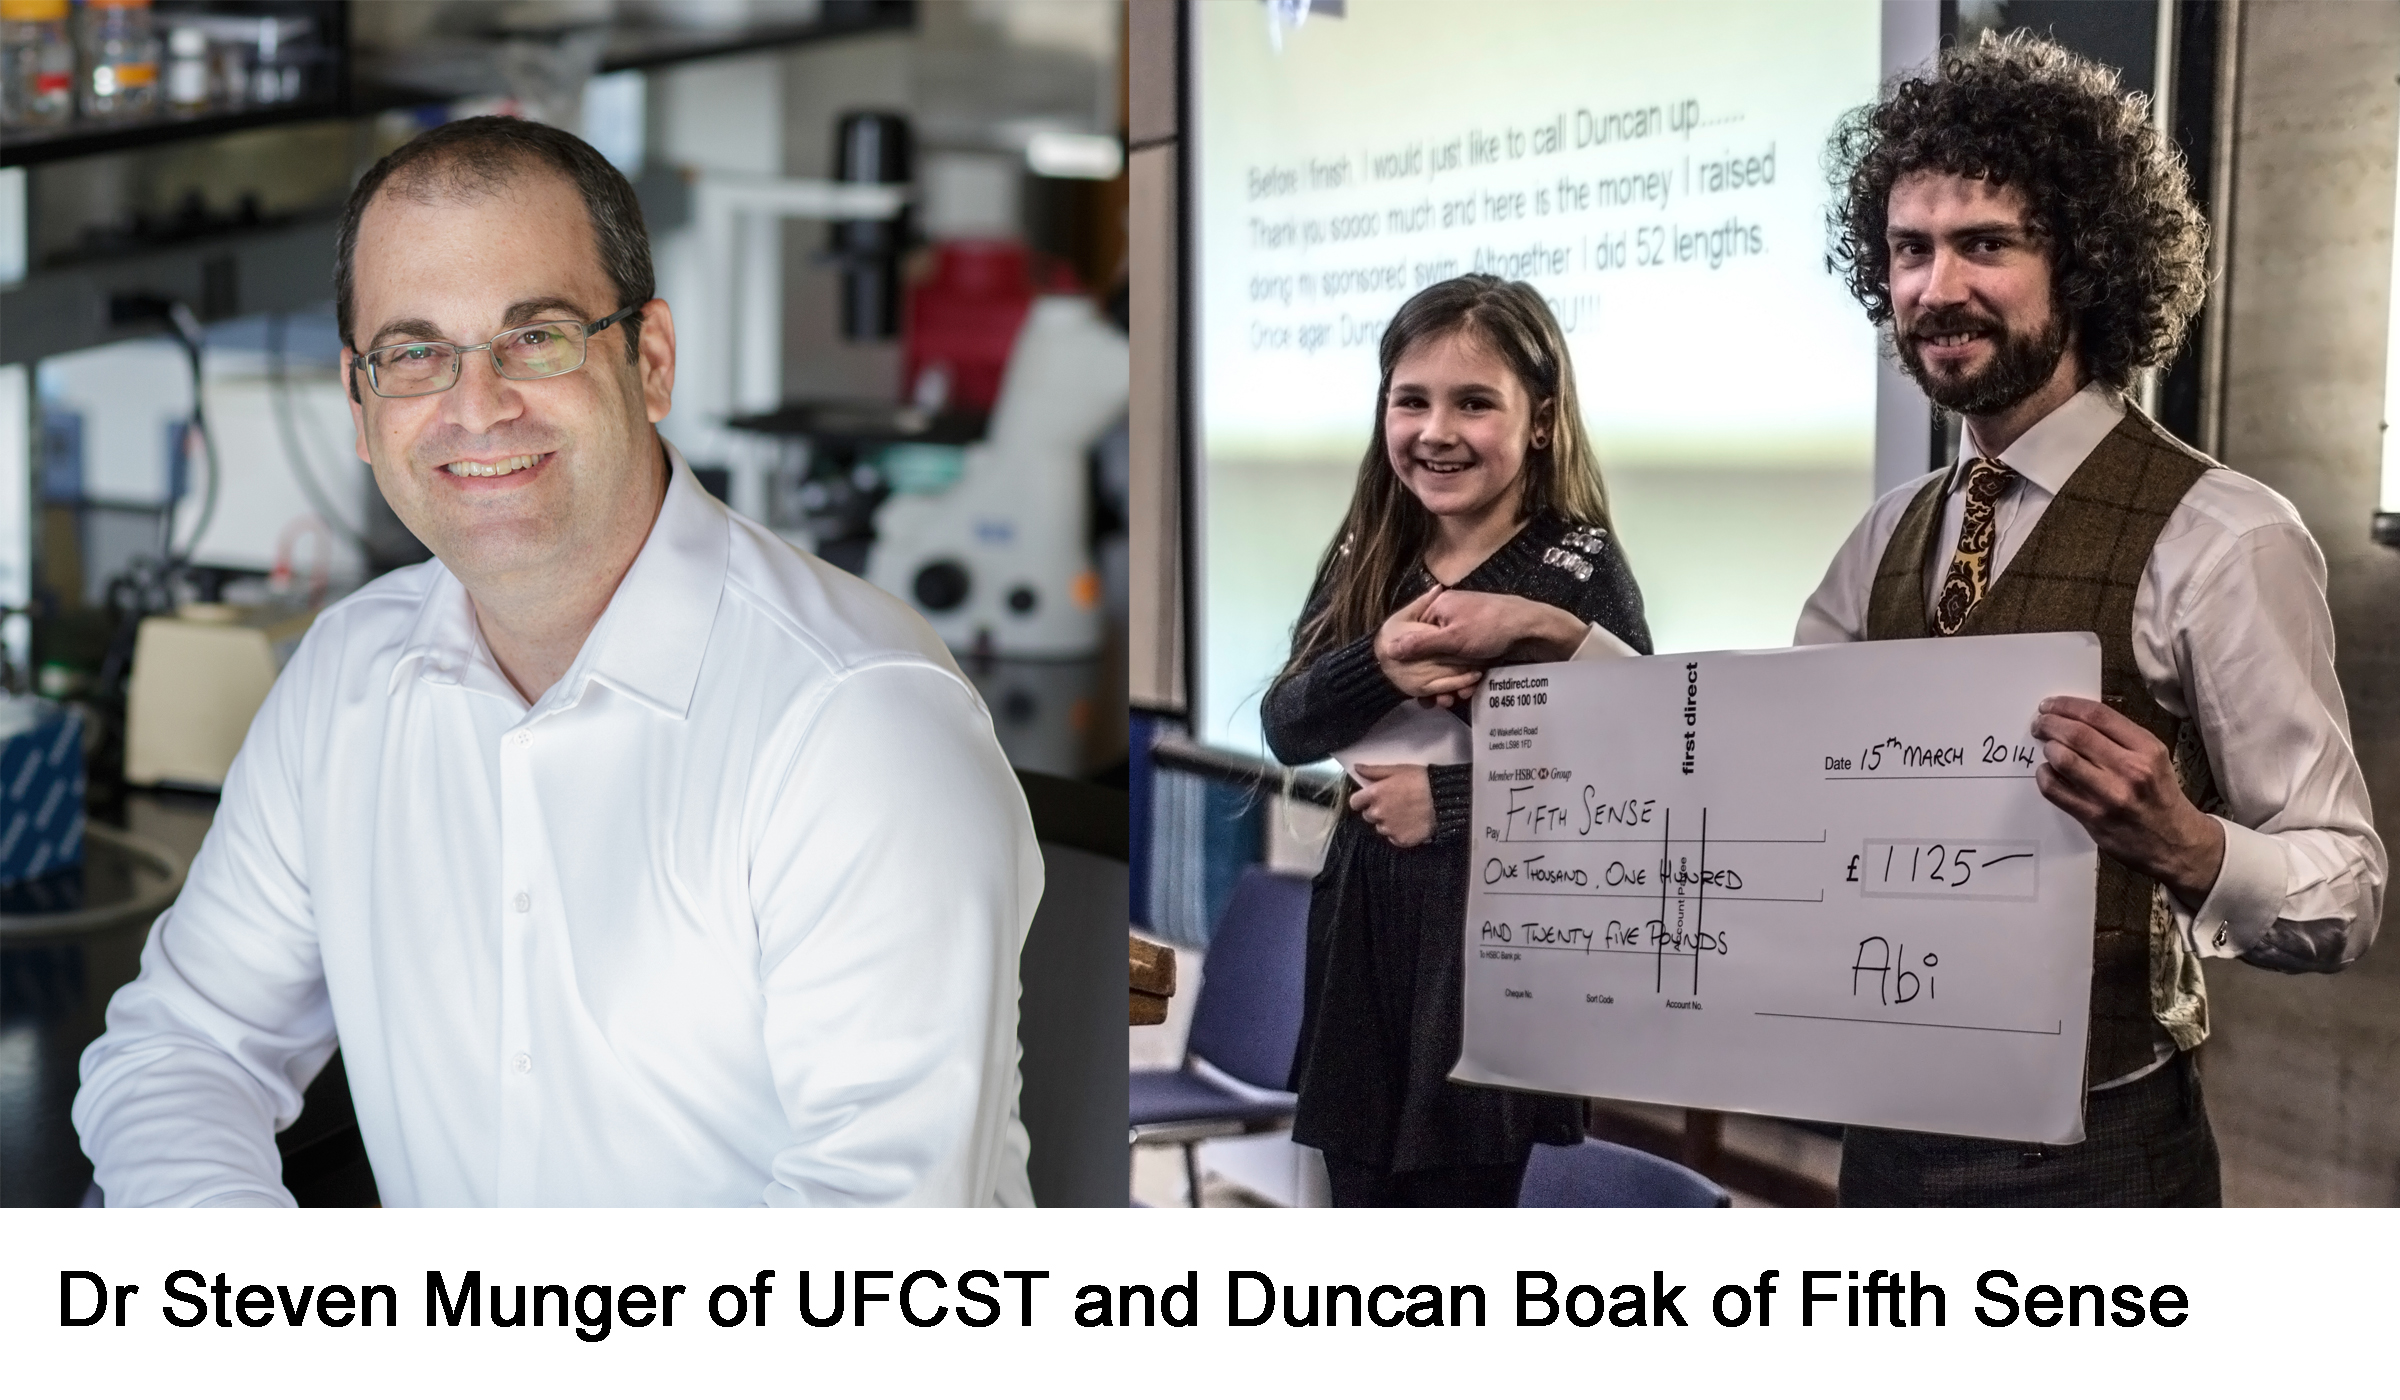 Steven Munger (UFCST) and Duncan Boak (Fifth Sense)